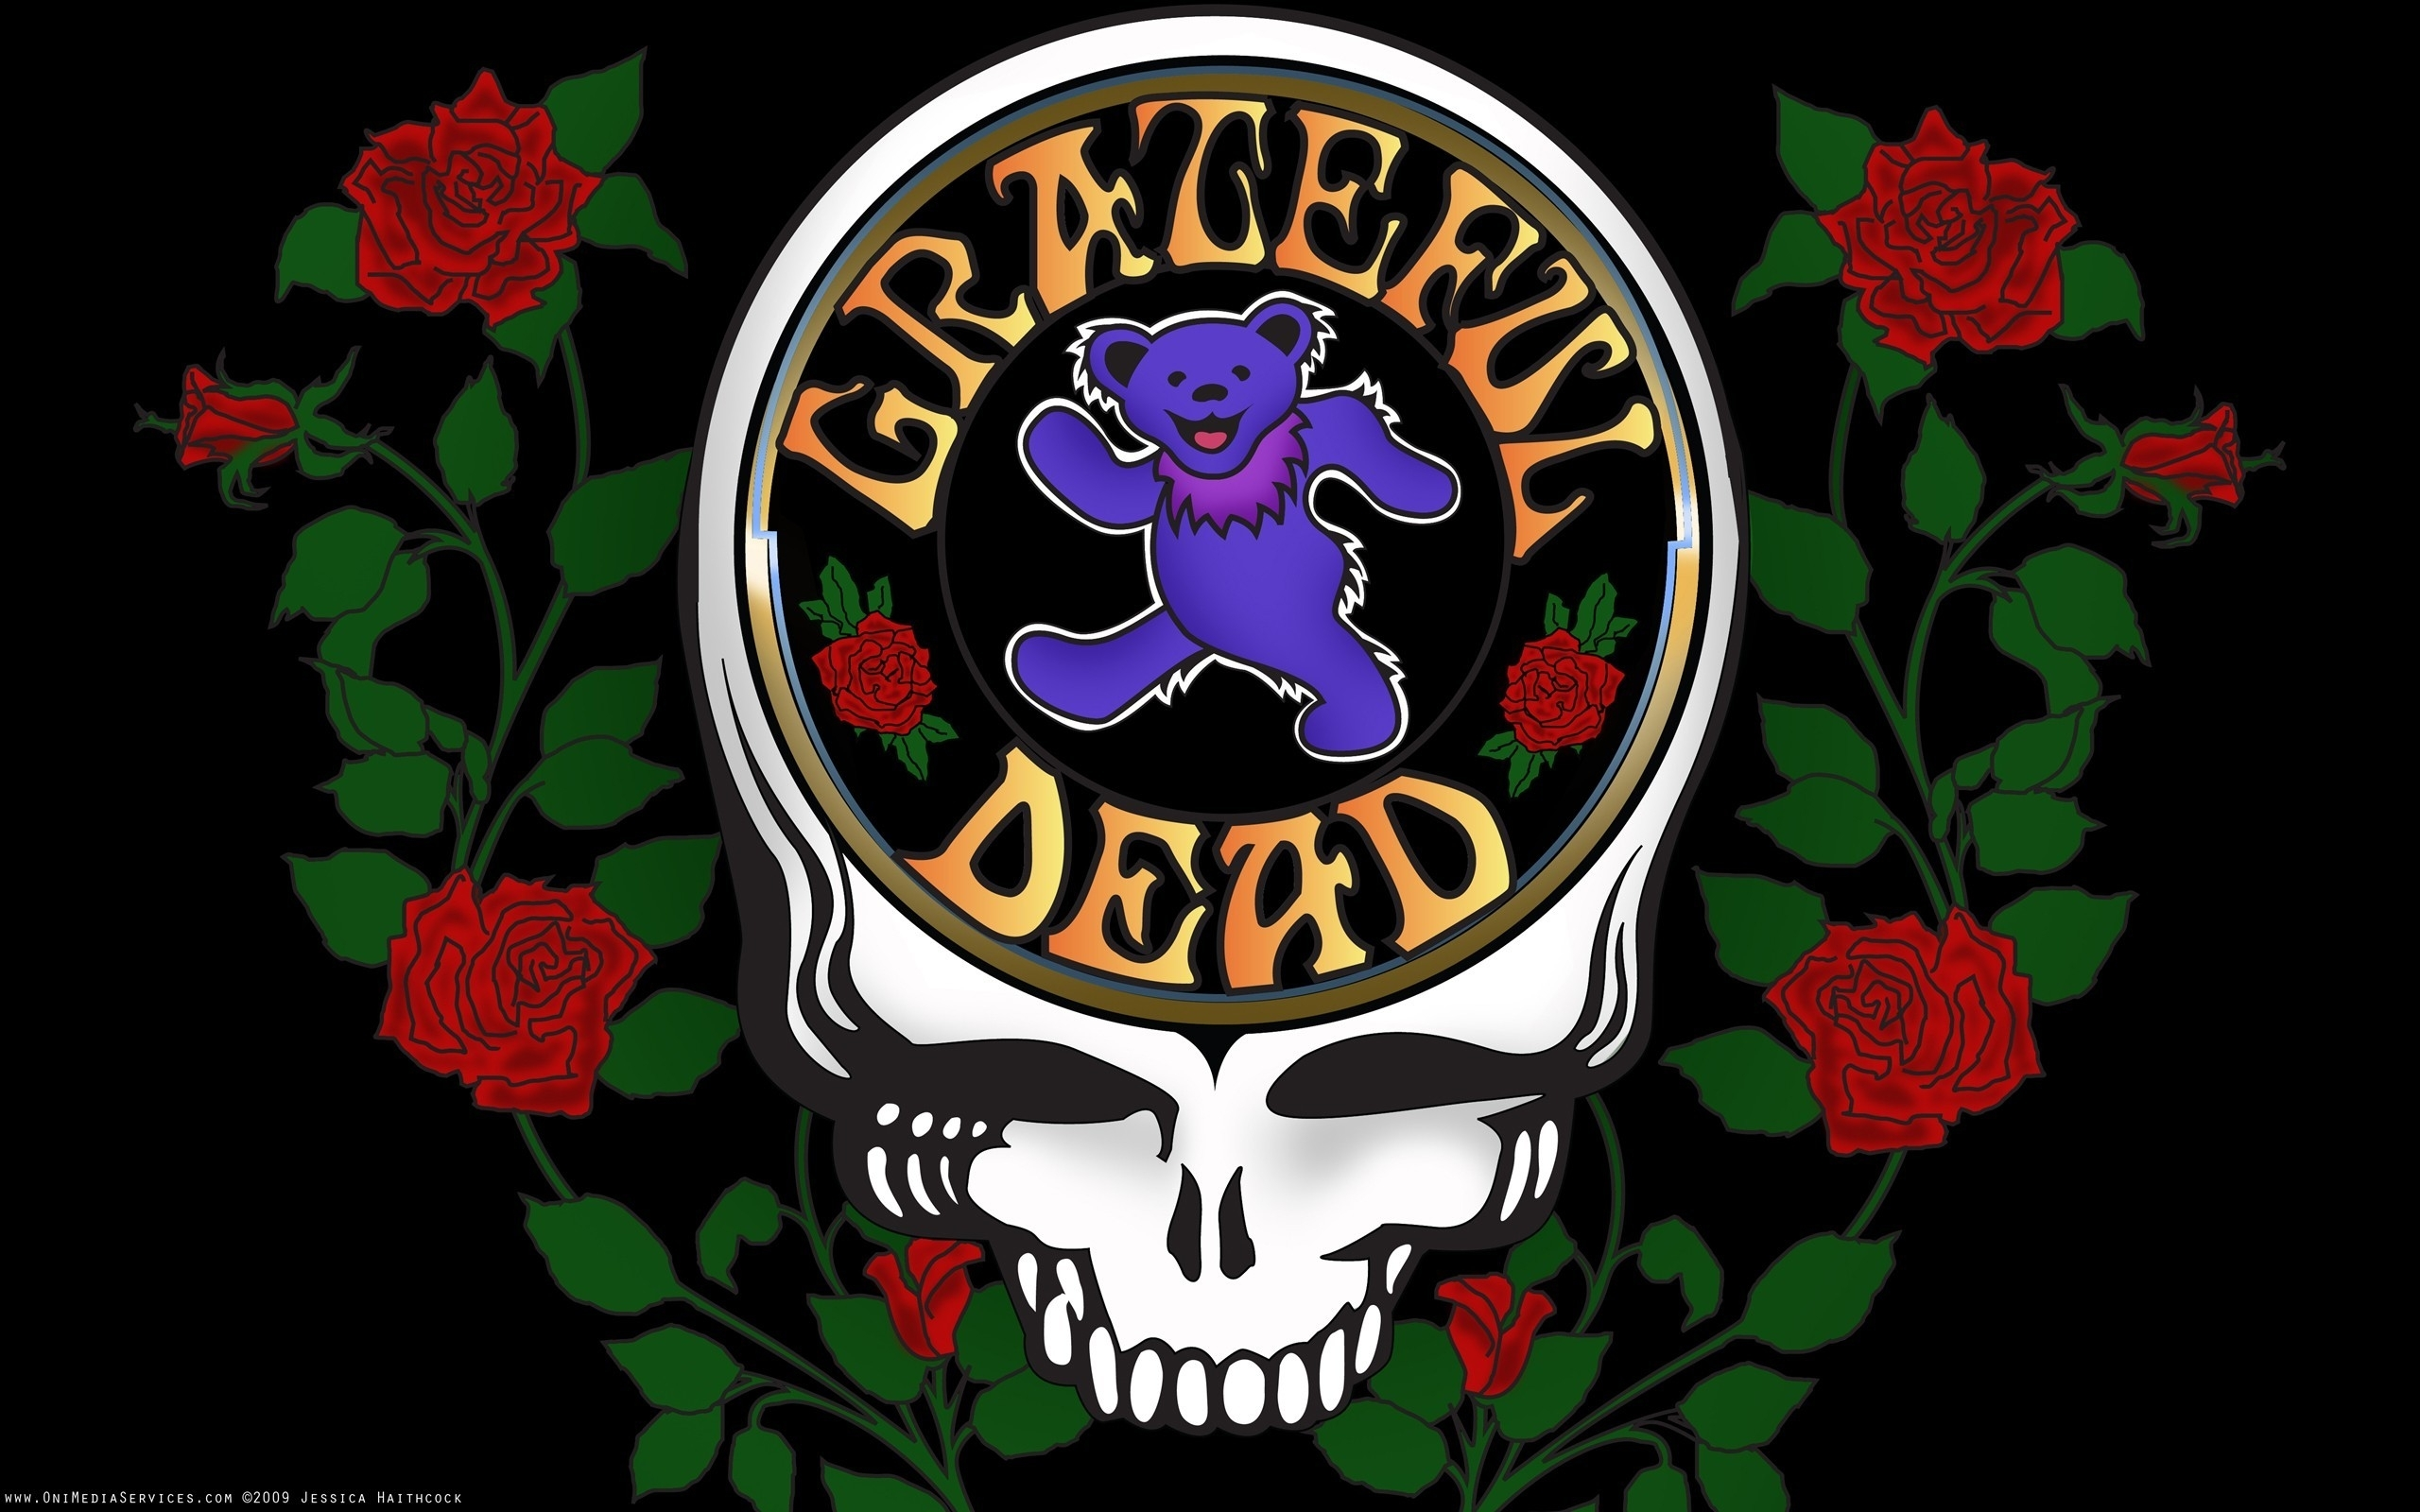 grateful dead screensavers wallpapers (50+ images)